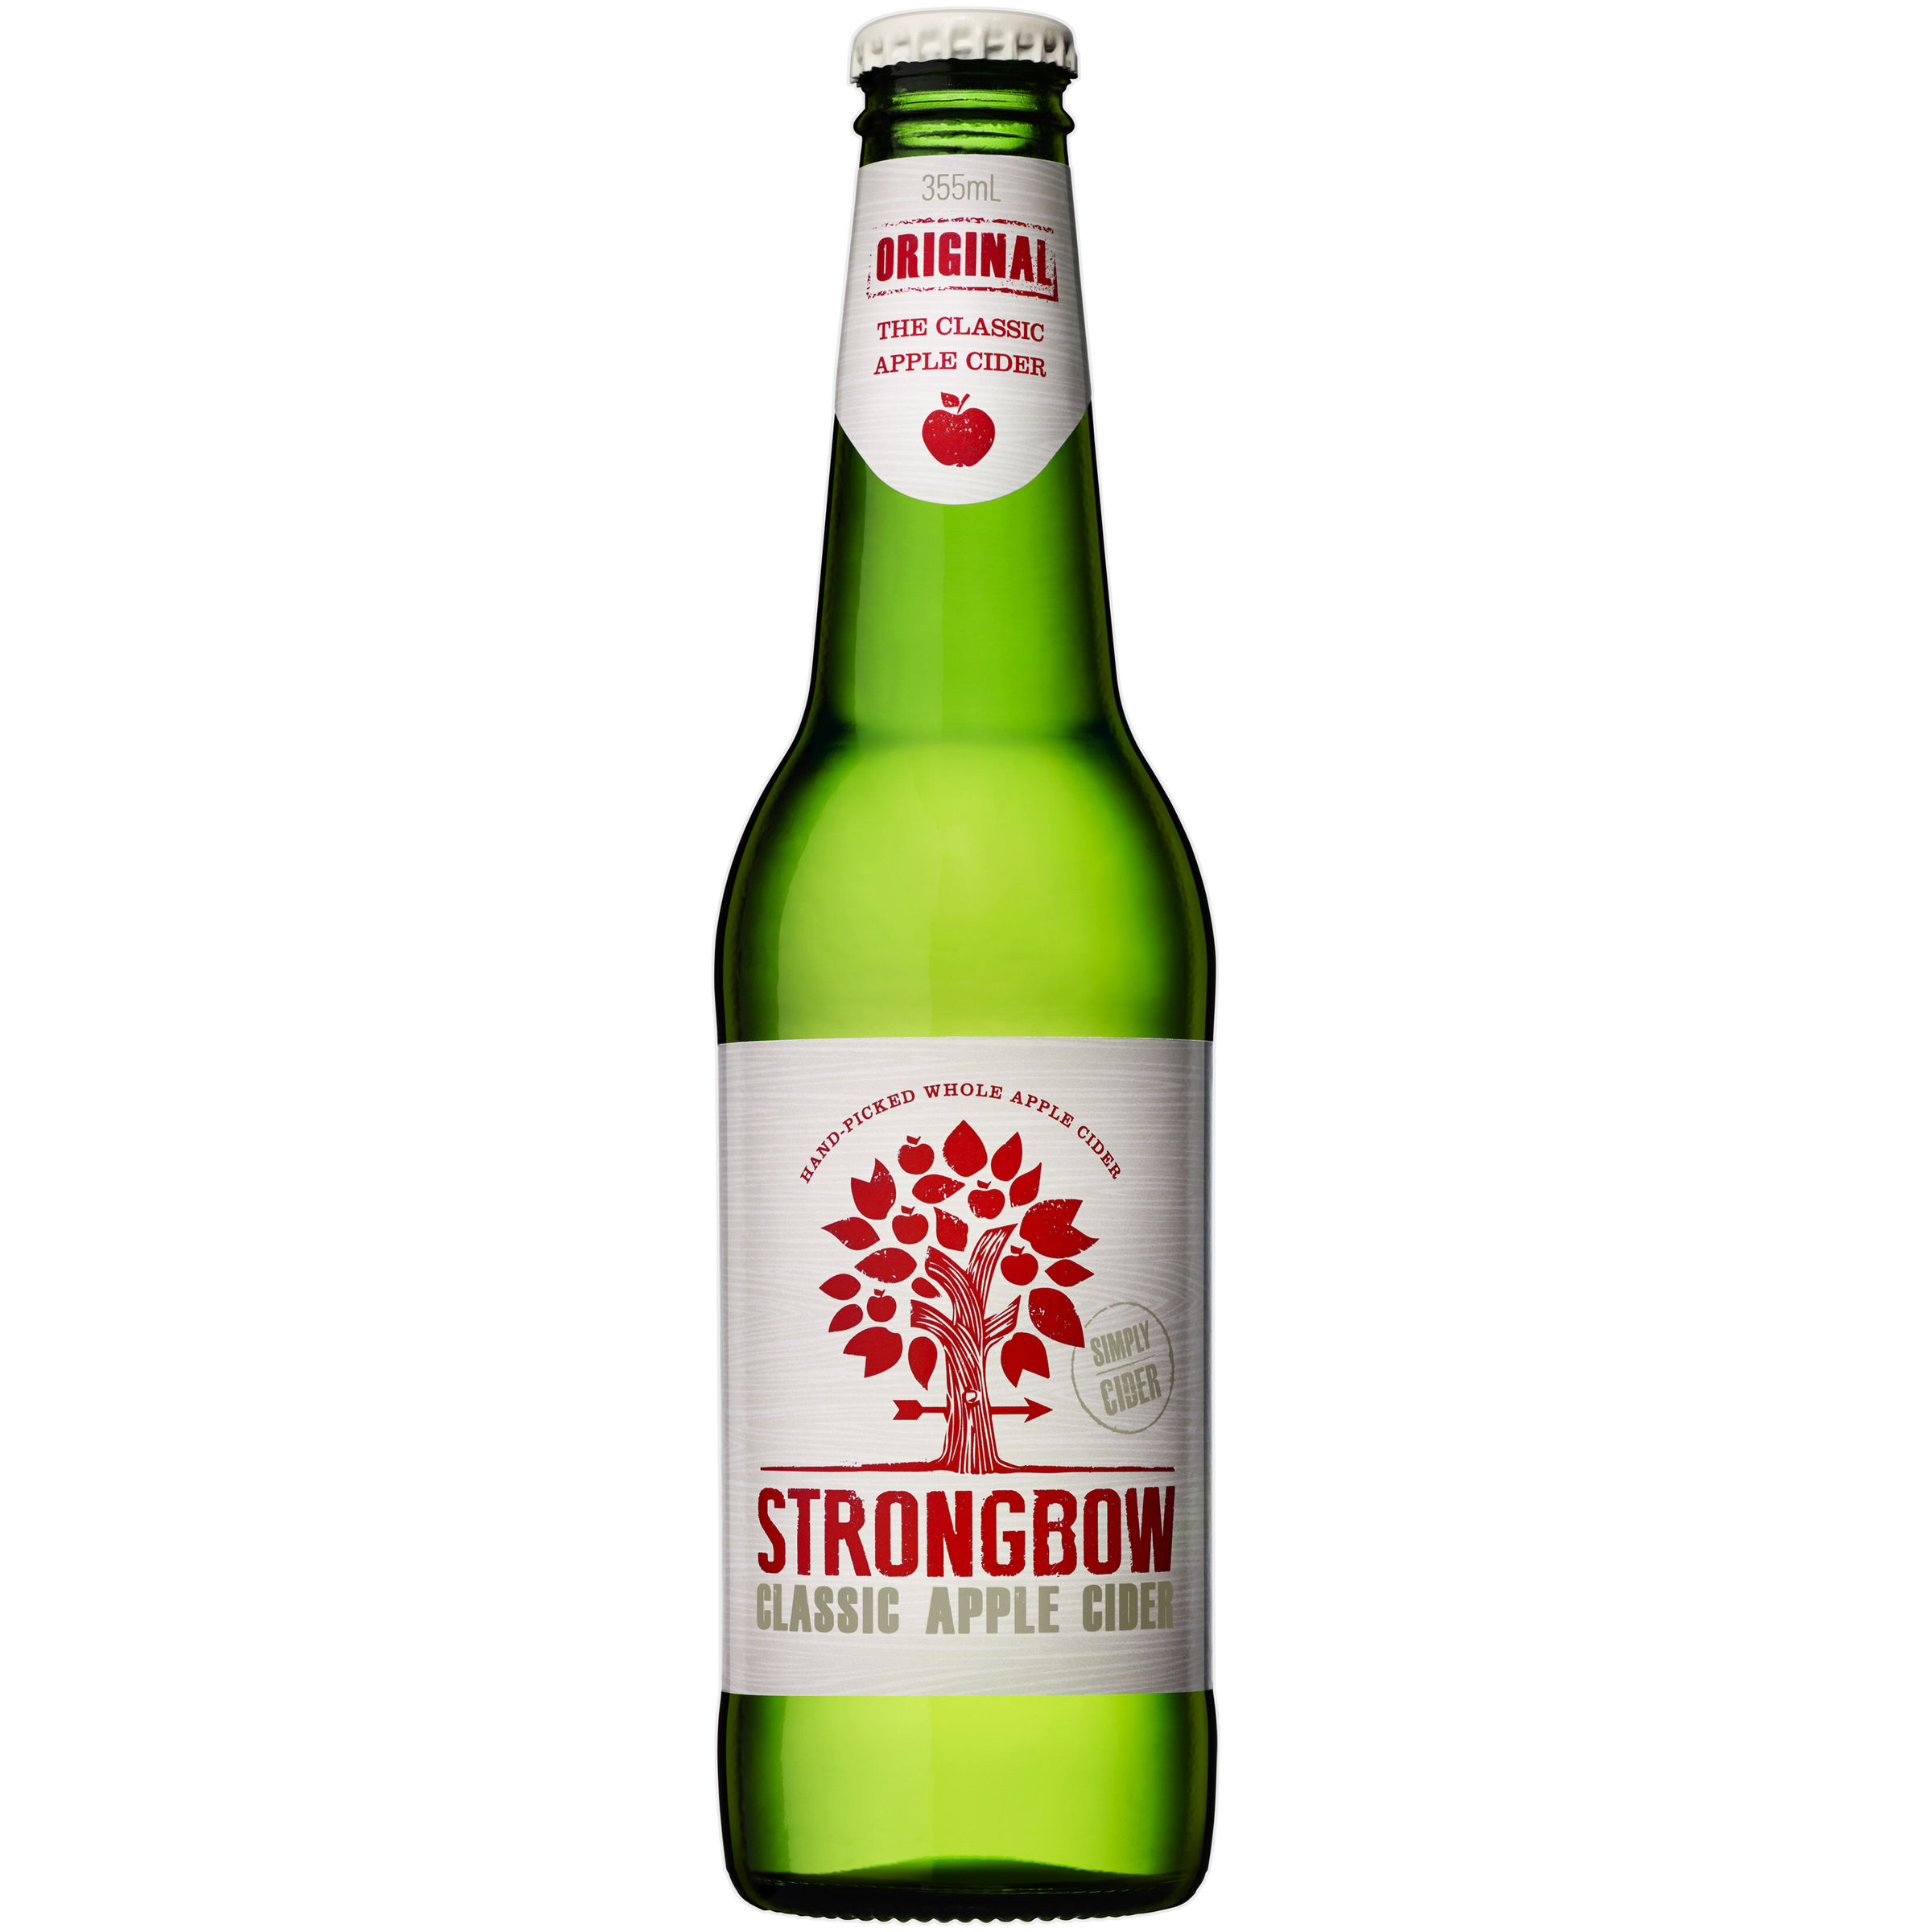 STRONGBOW CLASSIC APPLE